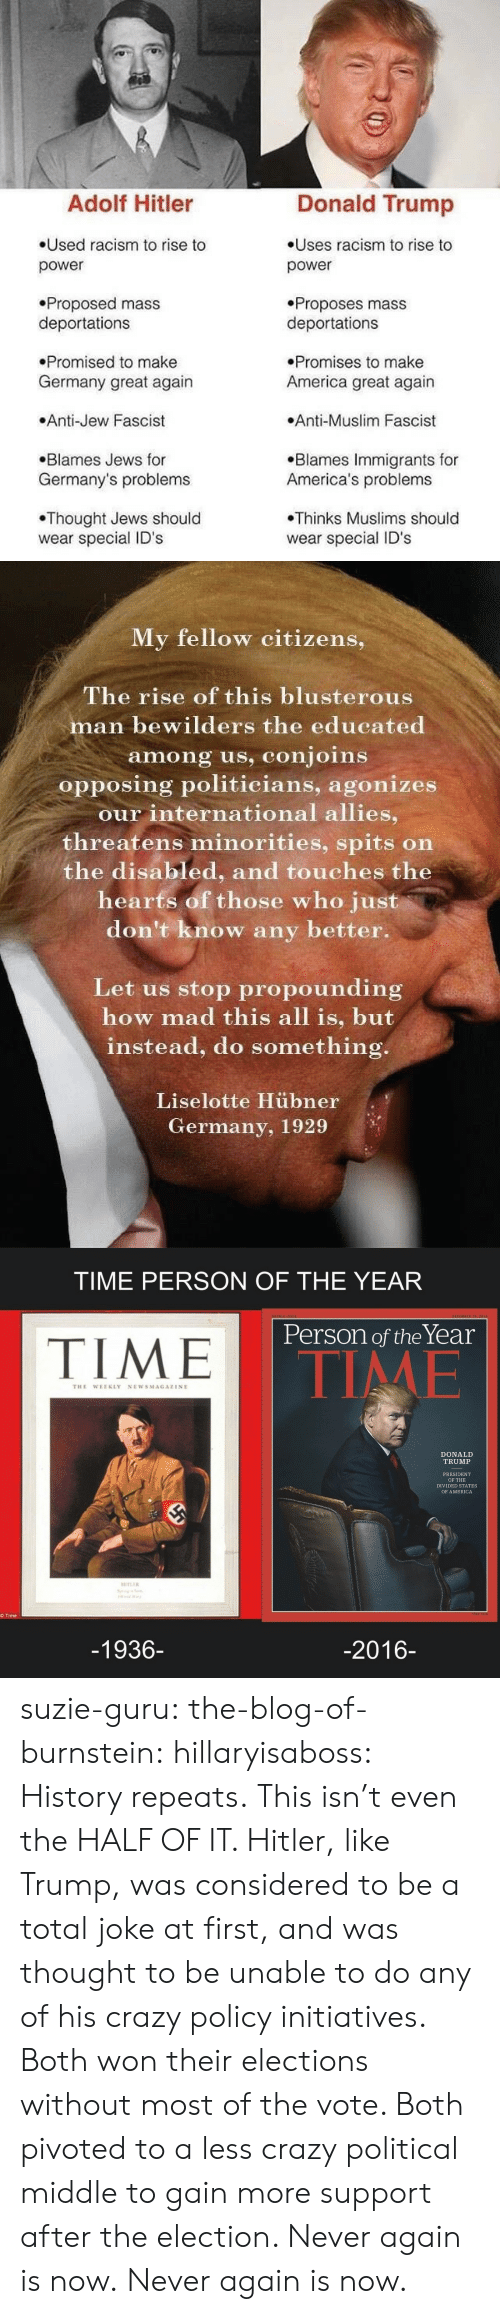 America, Crazy, and Donald Trump: Adolf Hitler  Donald Trump  Used racism to rise to  Uses racism to rise to  power  power  Proposed mass  deportations  Proposes mass  deportations  Promised to make  Promises to make  Germany great again  America great again  Anti-Jew Fascist  Anti-Muslim Fascist  Blames Immigrants for  America's problems  Blames Jews for  Germany's problems  Thinks Muslims should  Thought Jews should  wear special ID's  wear special ID'S   My fellow citizens,  The rise of this blusterous  man bewilders the educated  among us, conjoins  opposing politicians, agonizes  our international allies,  threatens minorities, spits on  the disabled, and touches the  hearts of those who just  don't know any  better.  Let us stop propounding  how mad this all is, but  instead, do something.  Liselotte Hübner  Germany, 1929   TIME PERSON OF THE YEAR  DOUBLE ISSUE  DECEMBER 19, 2016  Person of the Year  TIME  TIME  THE WEEKLY NEWSMAGAZINE  DONALD  TRUMP  PRESIDENT  OF THE  DIVIDED STATES  OF AMERICA  HITLER  © Time  -1936-  -2016- suzie-guru:  the-blog-of-burnstein:  hillaryisaboss: History repeats.  This isn't even the HALF OF IT. Hitler, like Trump, was considered to be a total joke at first, and was thought to be unable to do any of his crazy policy initiatives. Both won their elections without most of the vote. Both pivoted to a less crazy political middle to gain more support after the election.  Never again is now.  Never again is now.